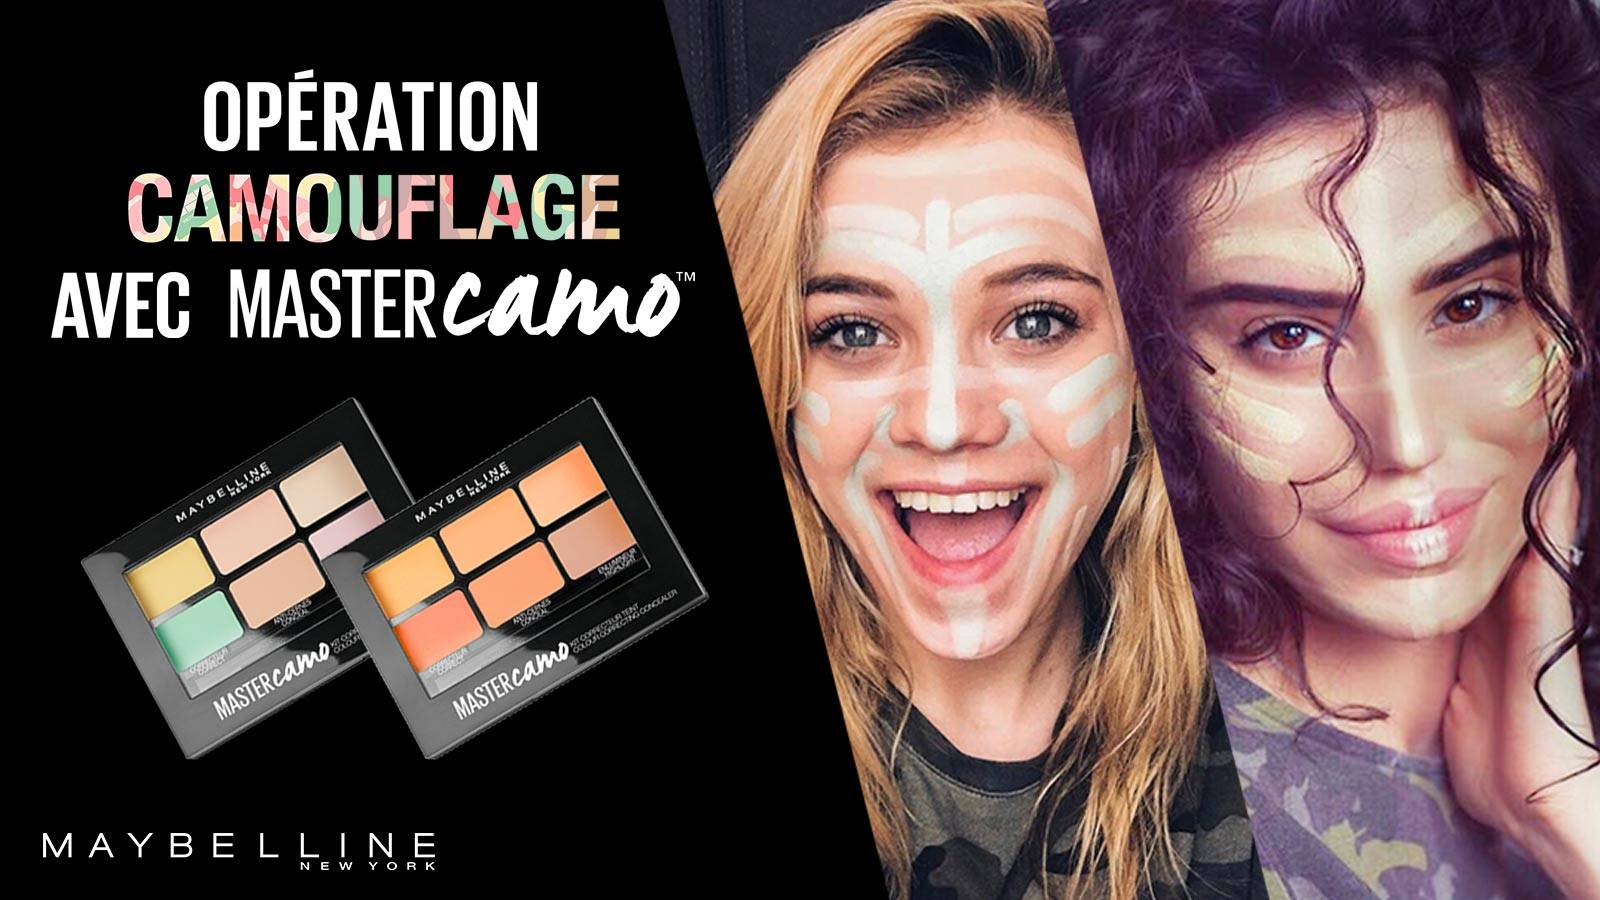 maybelline-master-camo-opération-camouflage-mashup-video-16x9